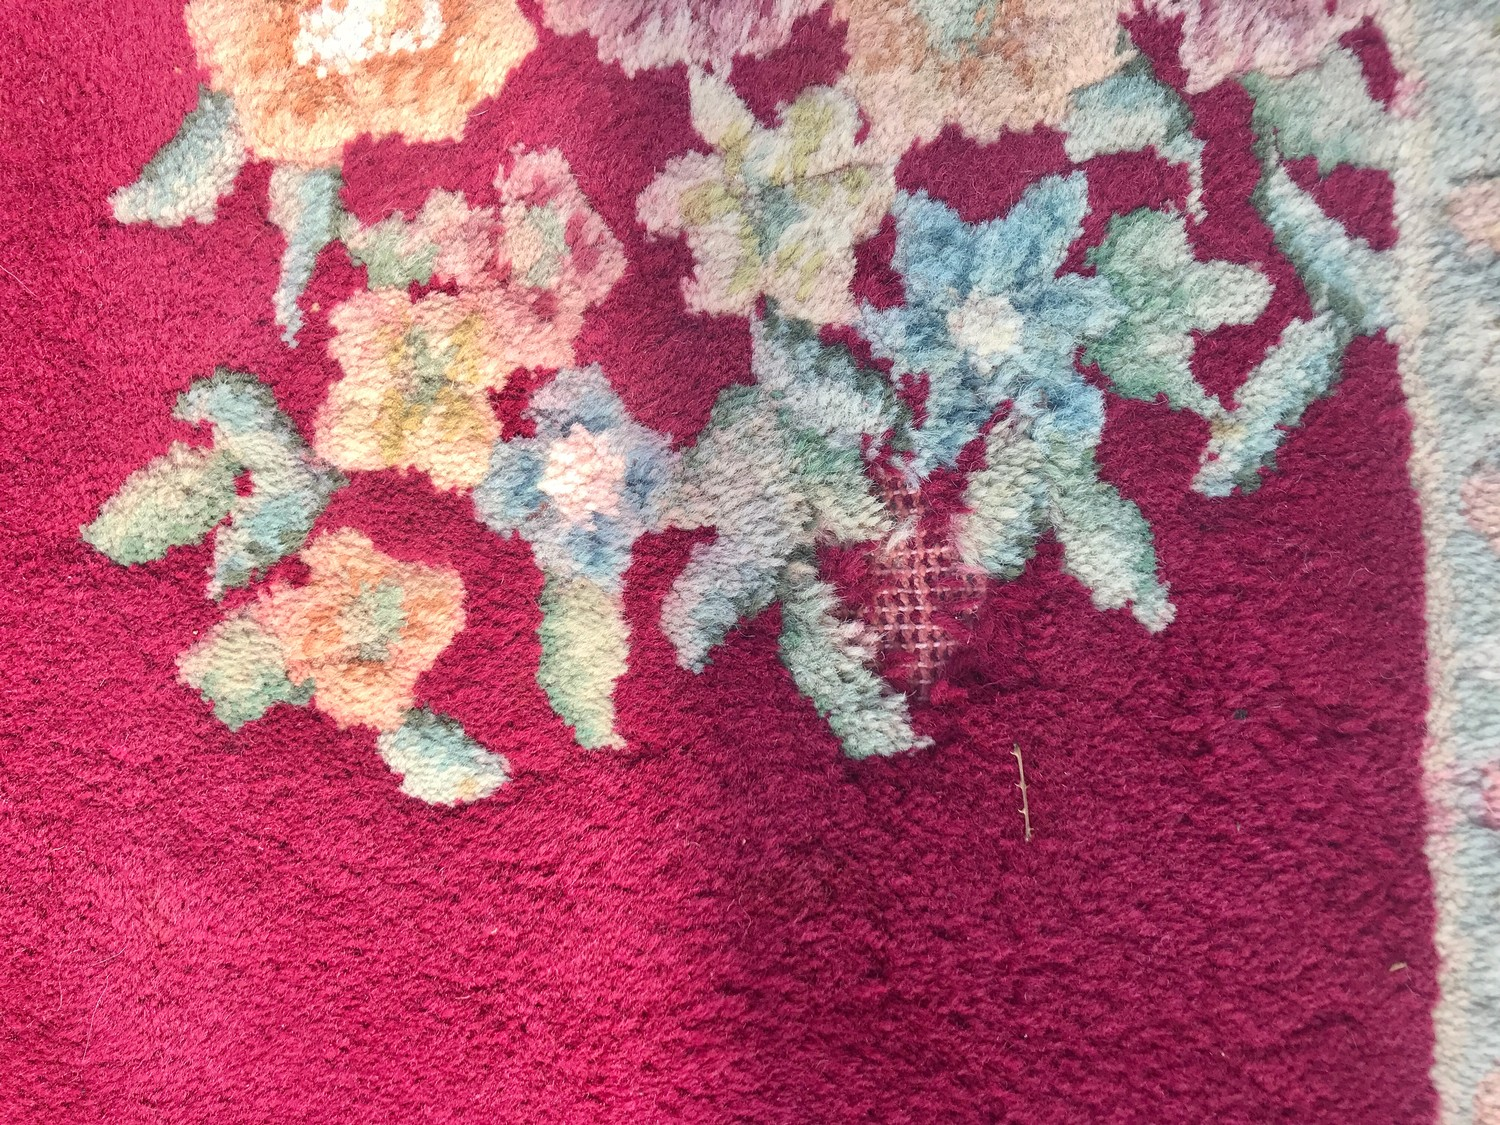 """Large rug measures approx 125"""" long by 110"""" wide has a few ware marks - Image 2 of 3"""